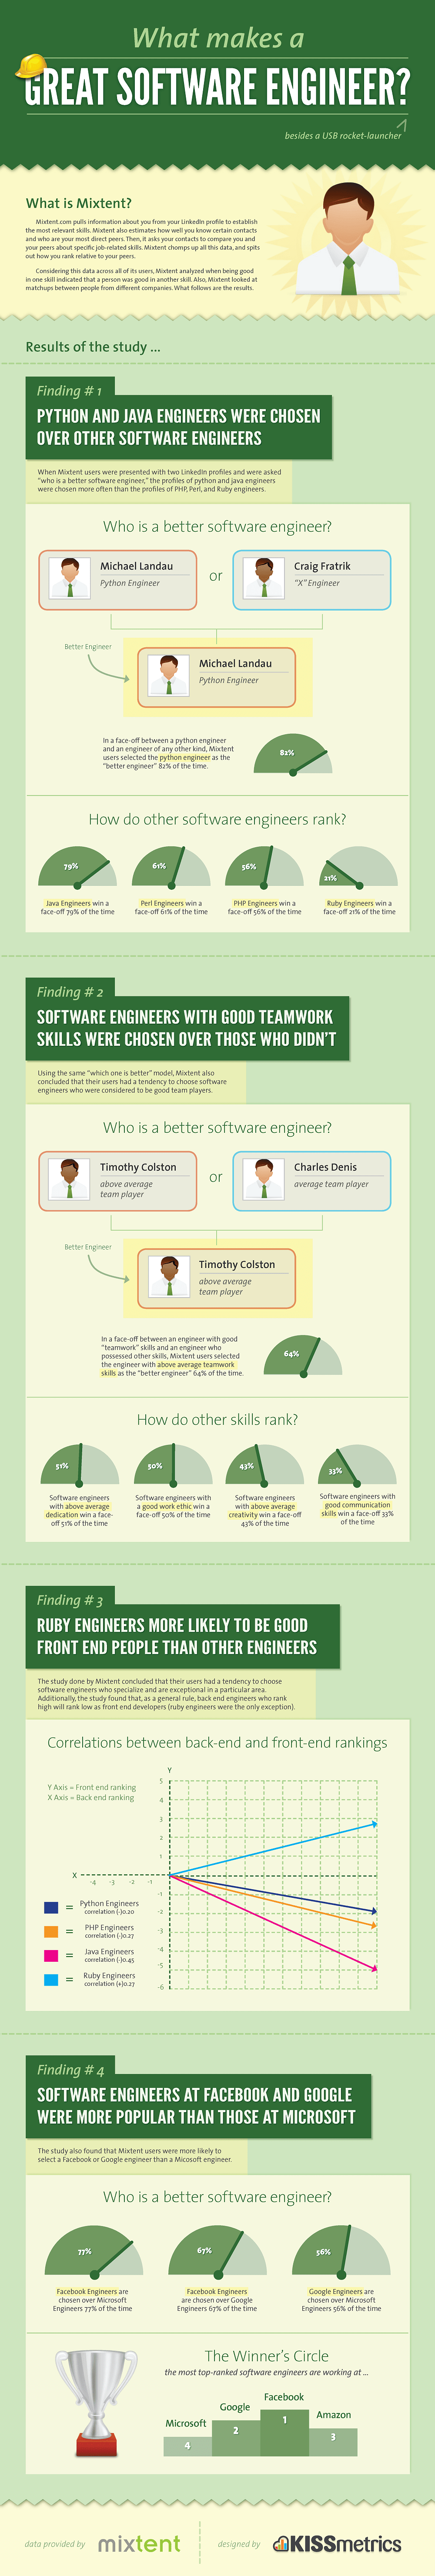 Great Software Engineers